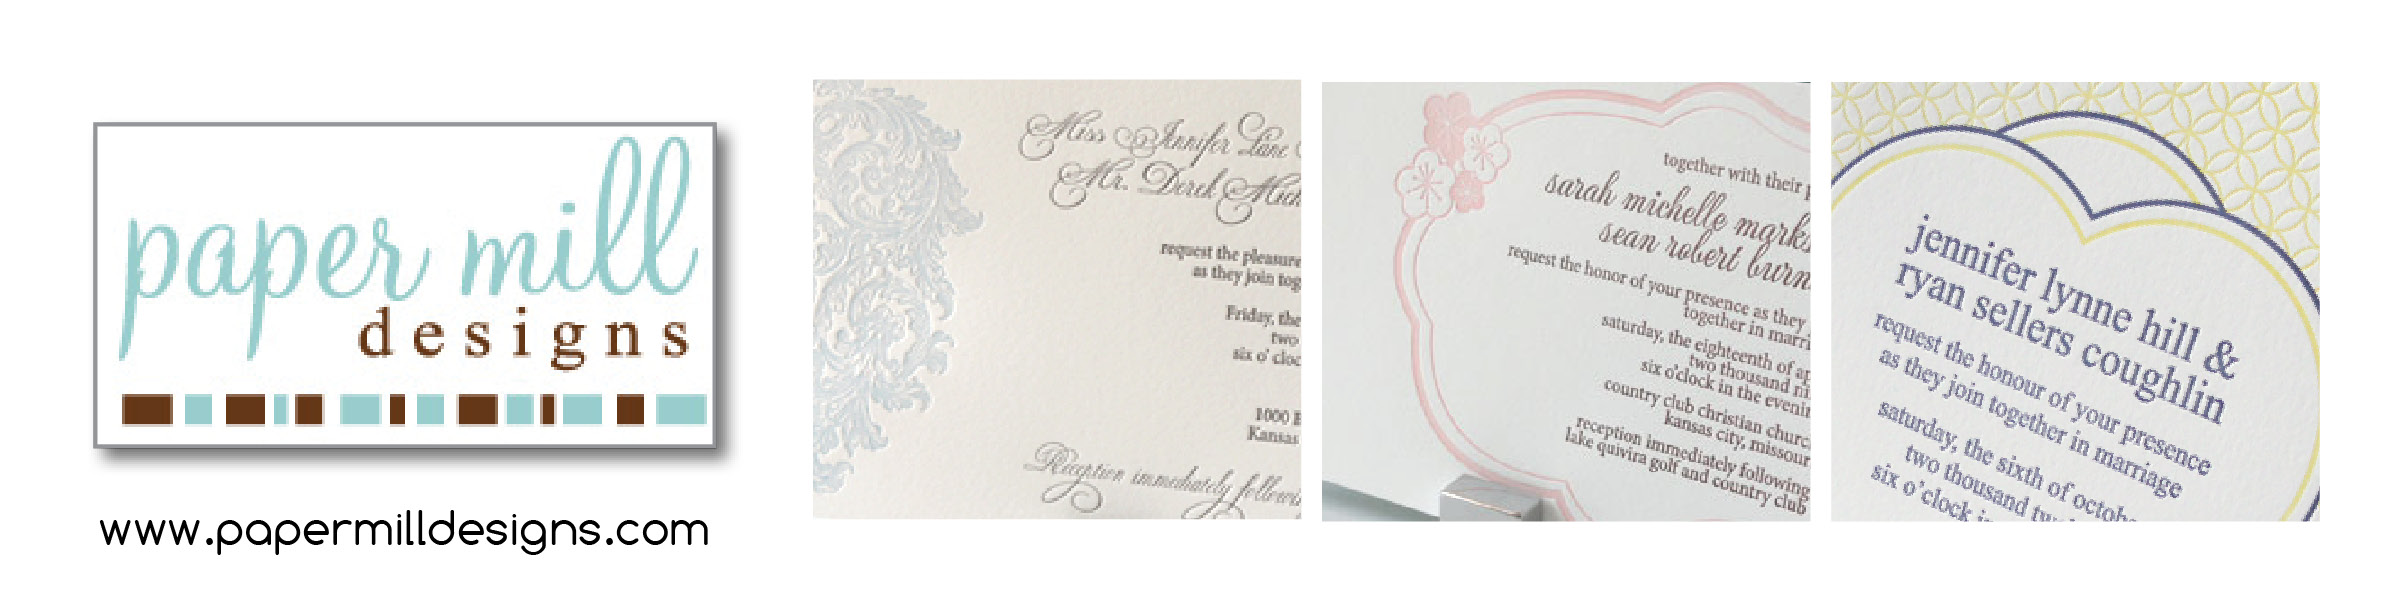 Toronto Letterpress - Toronto Wedding Invitations